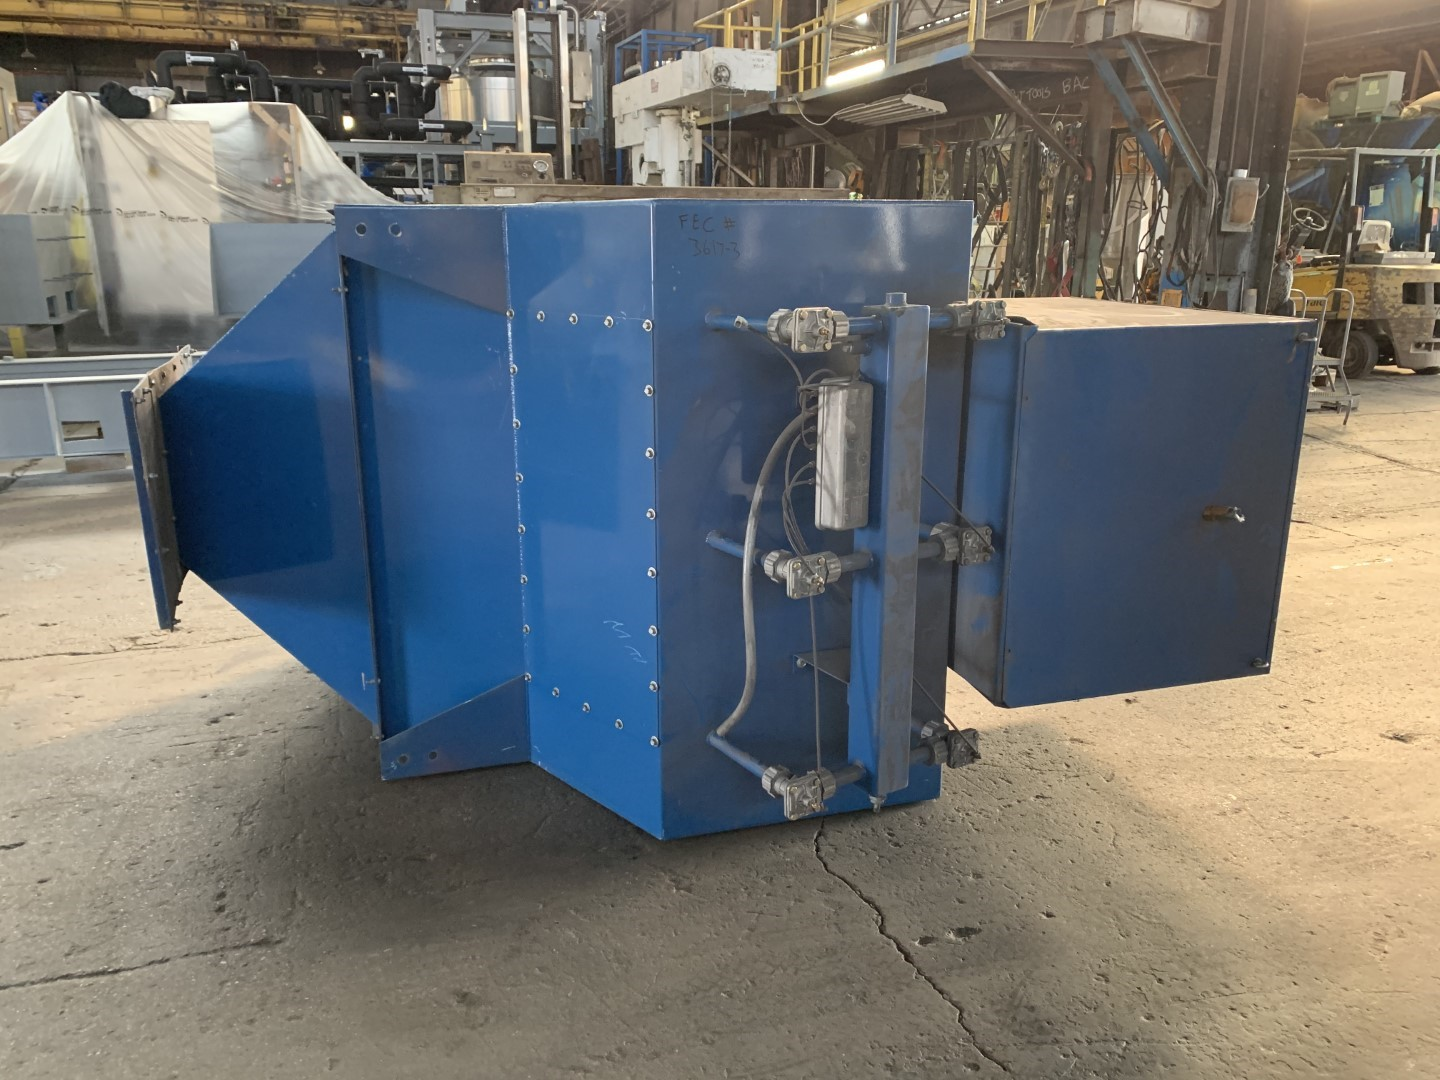 2,280 Sq Ft Torit Dust Collector, C/S